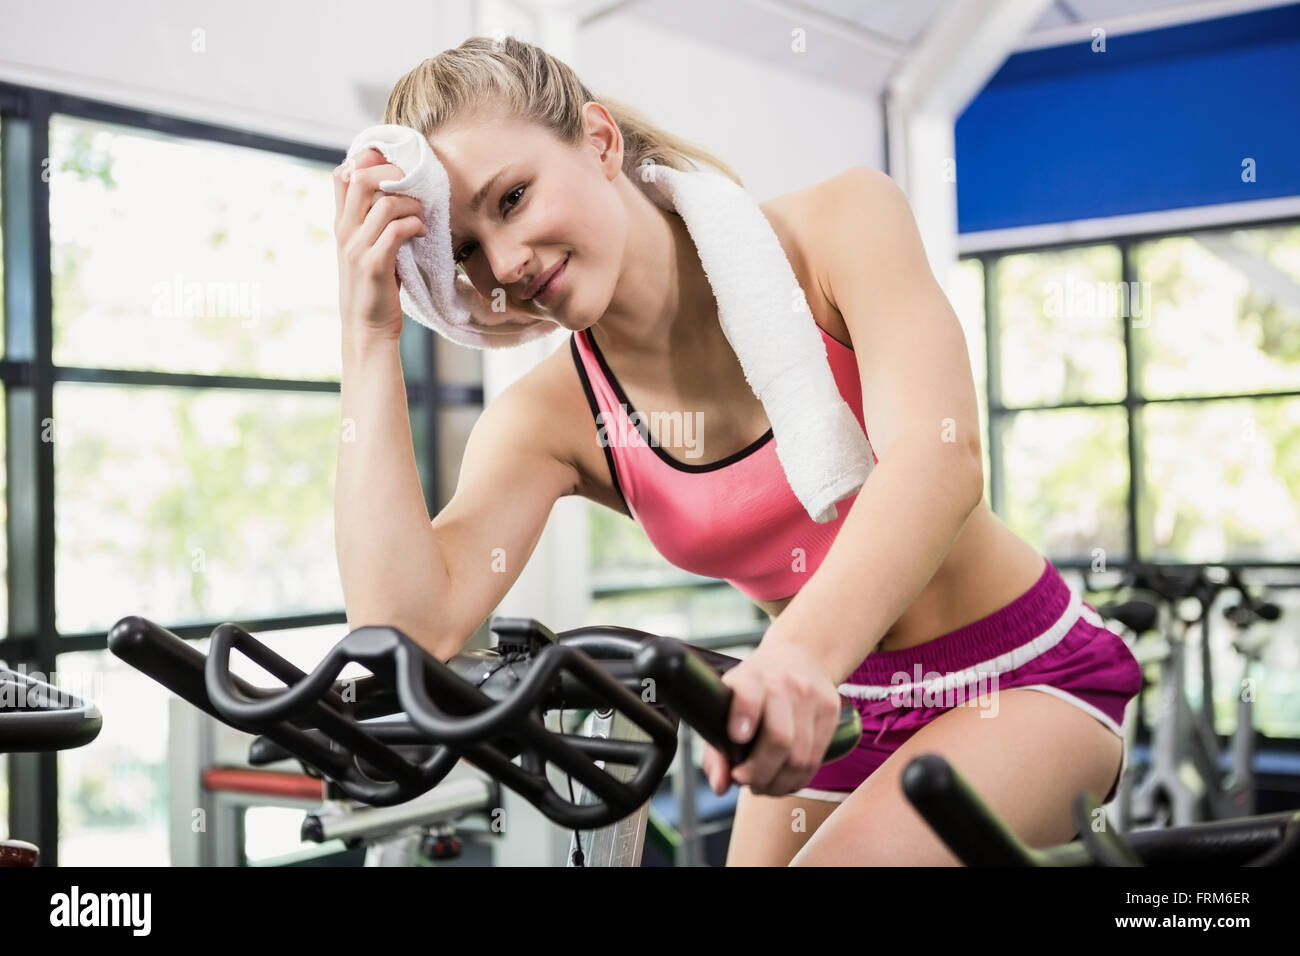 Tired woman wiping his face after workout - Stock Image